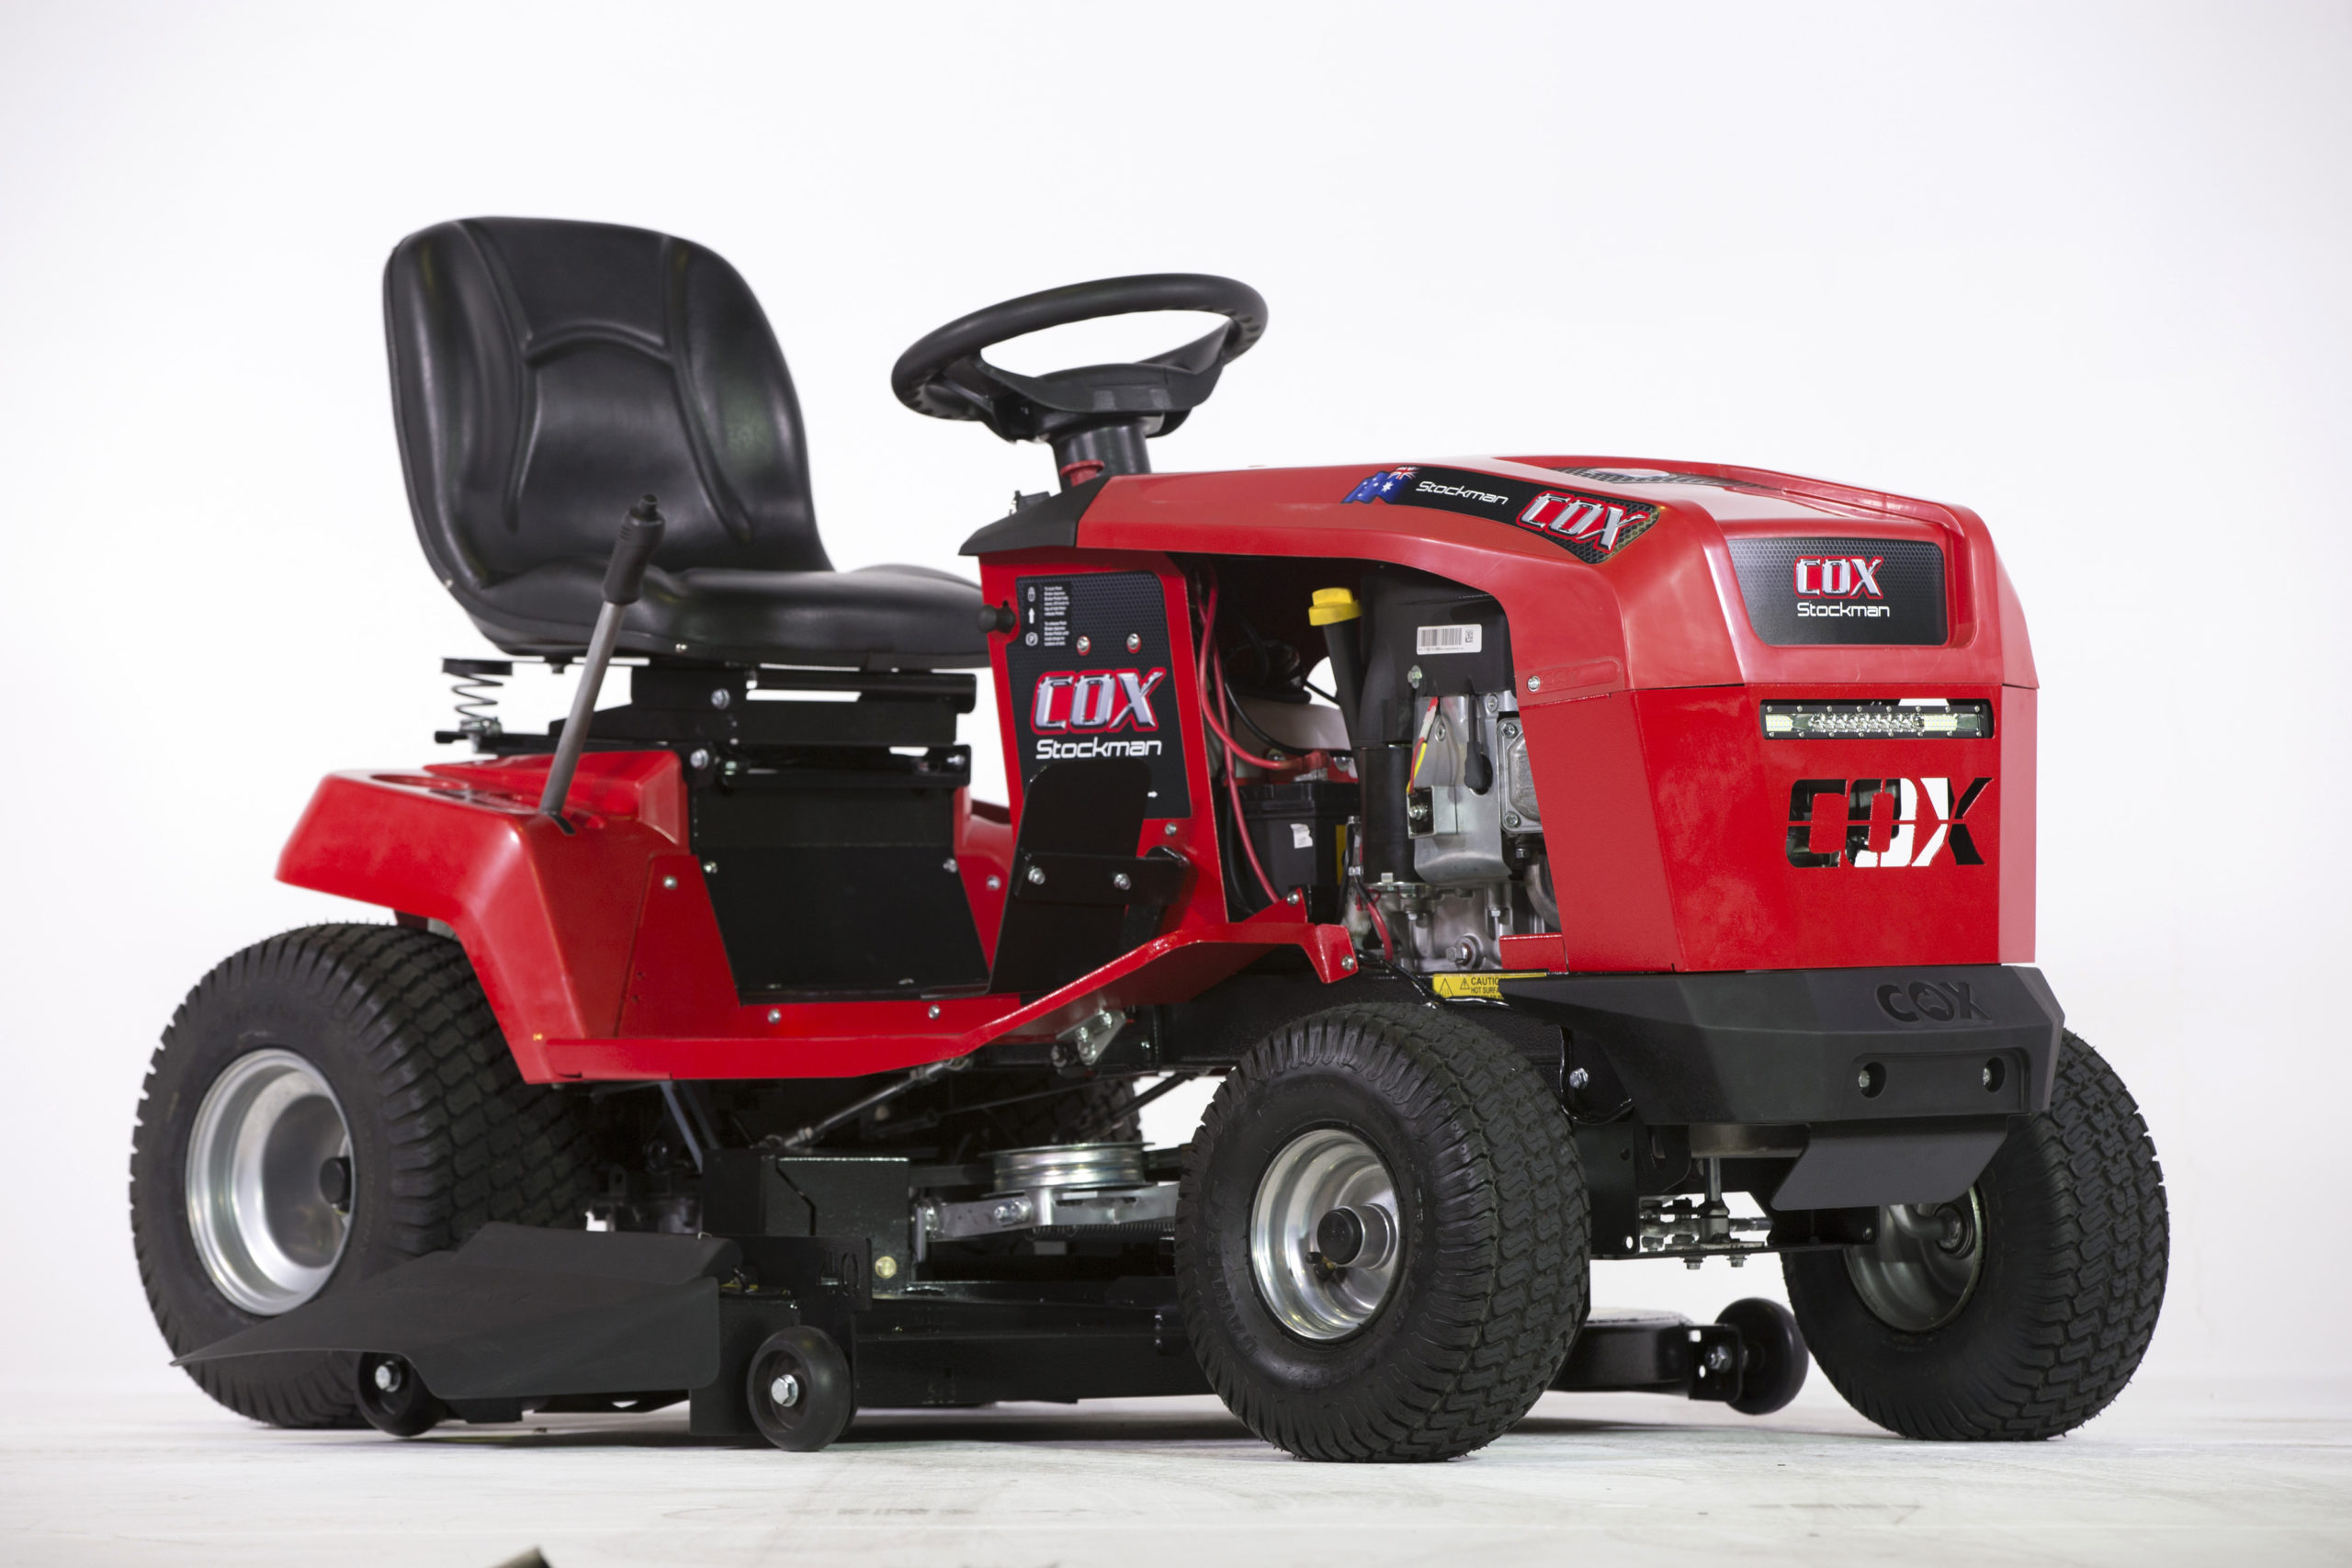 Image of the Cox Stockman Plus 17B32 Ride on Lawn Mower